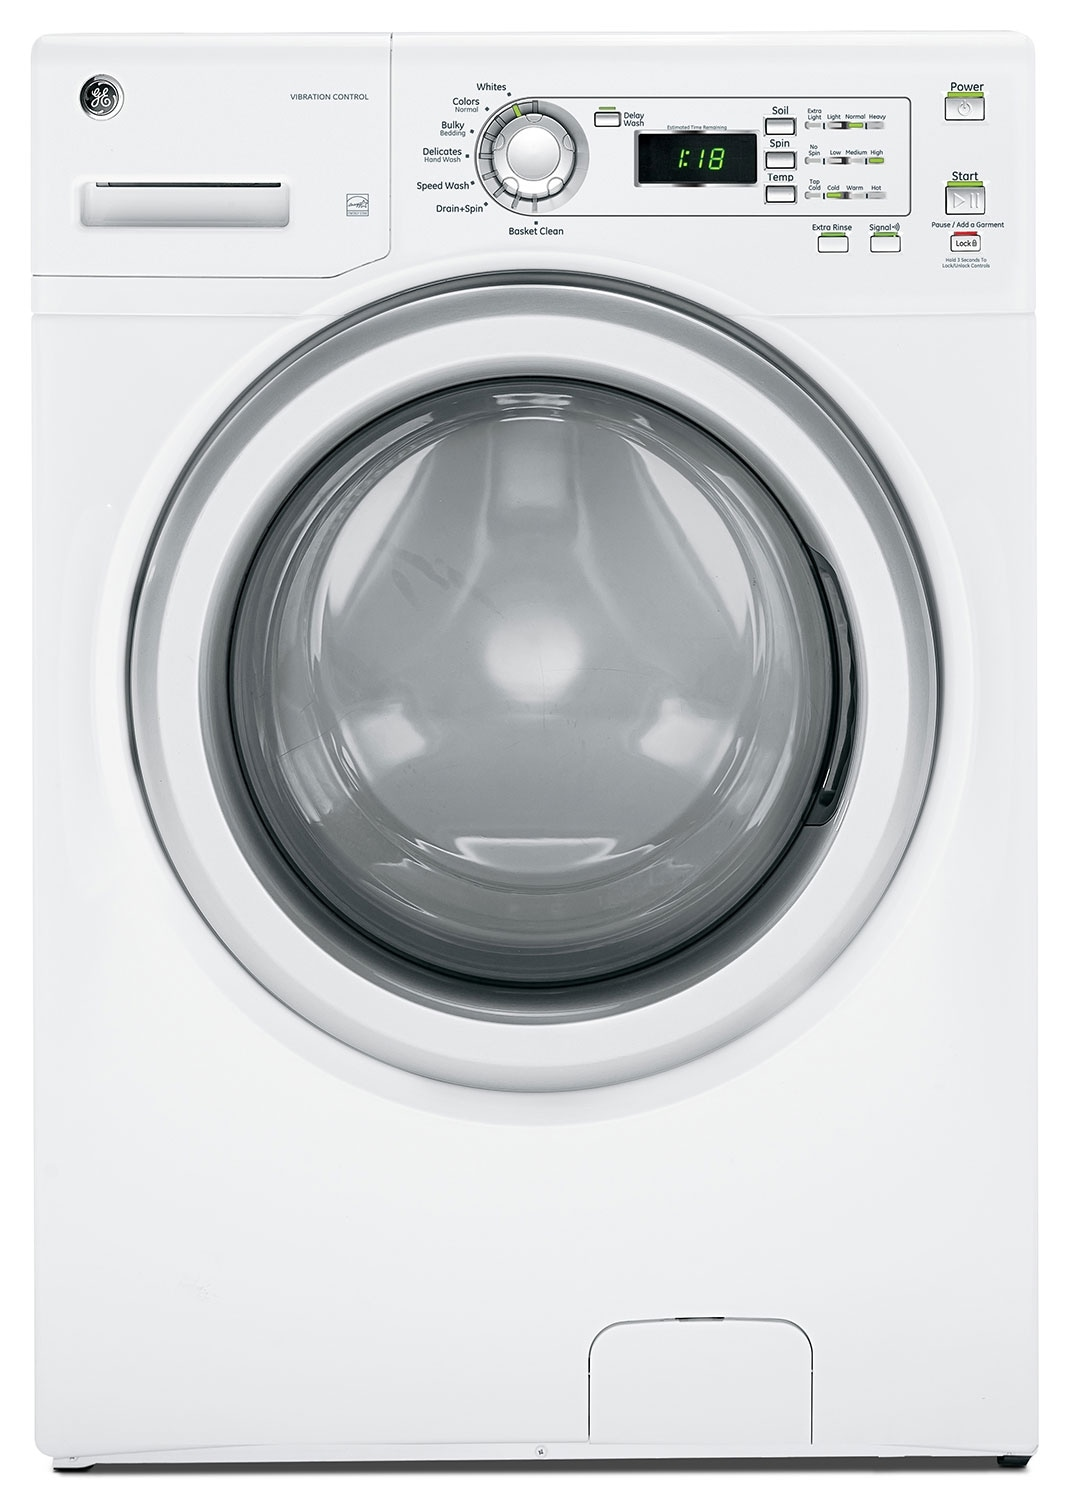 GE White Front-Load Washer (4.2 Cu. Ft. IEC) - GFWN1100HWW